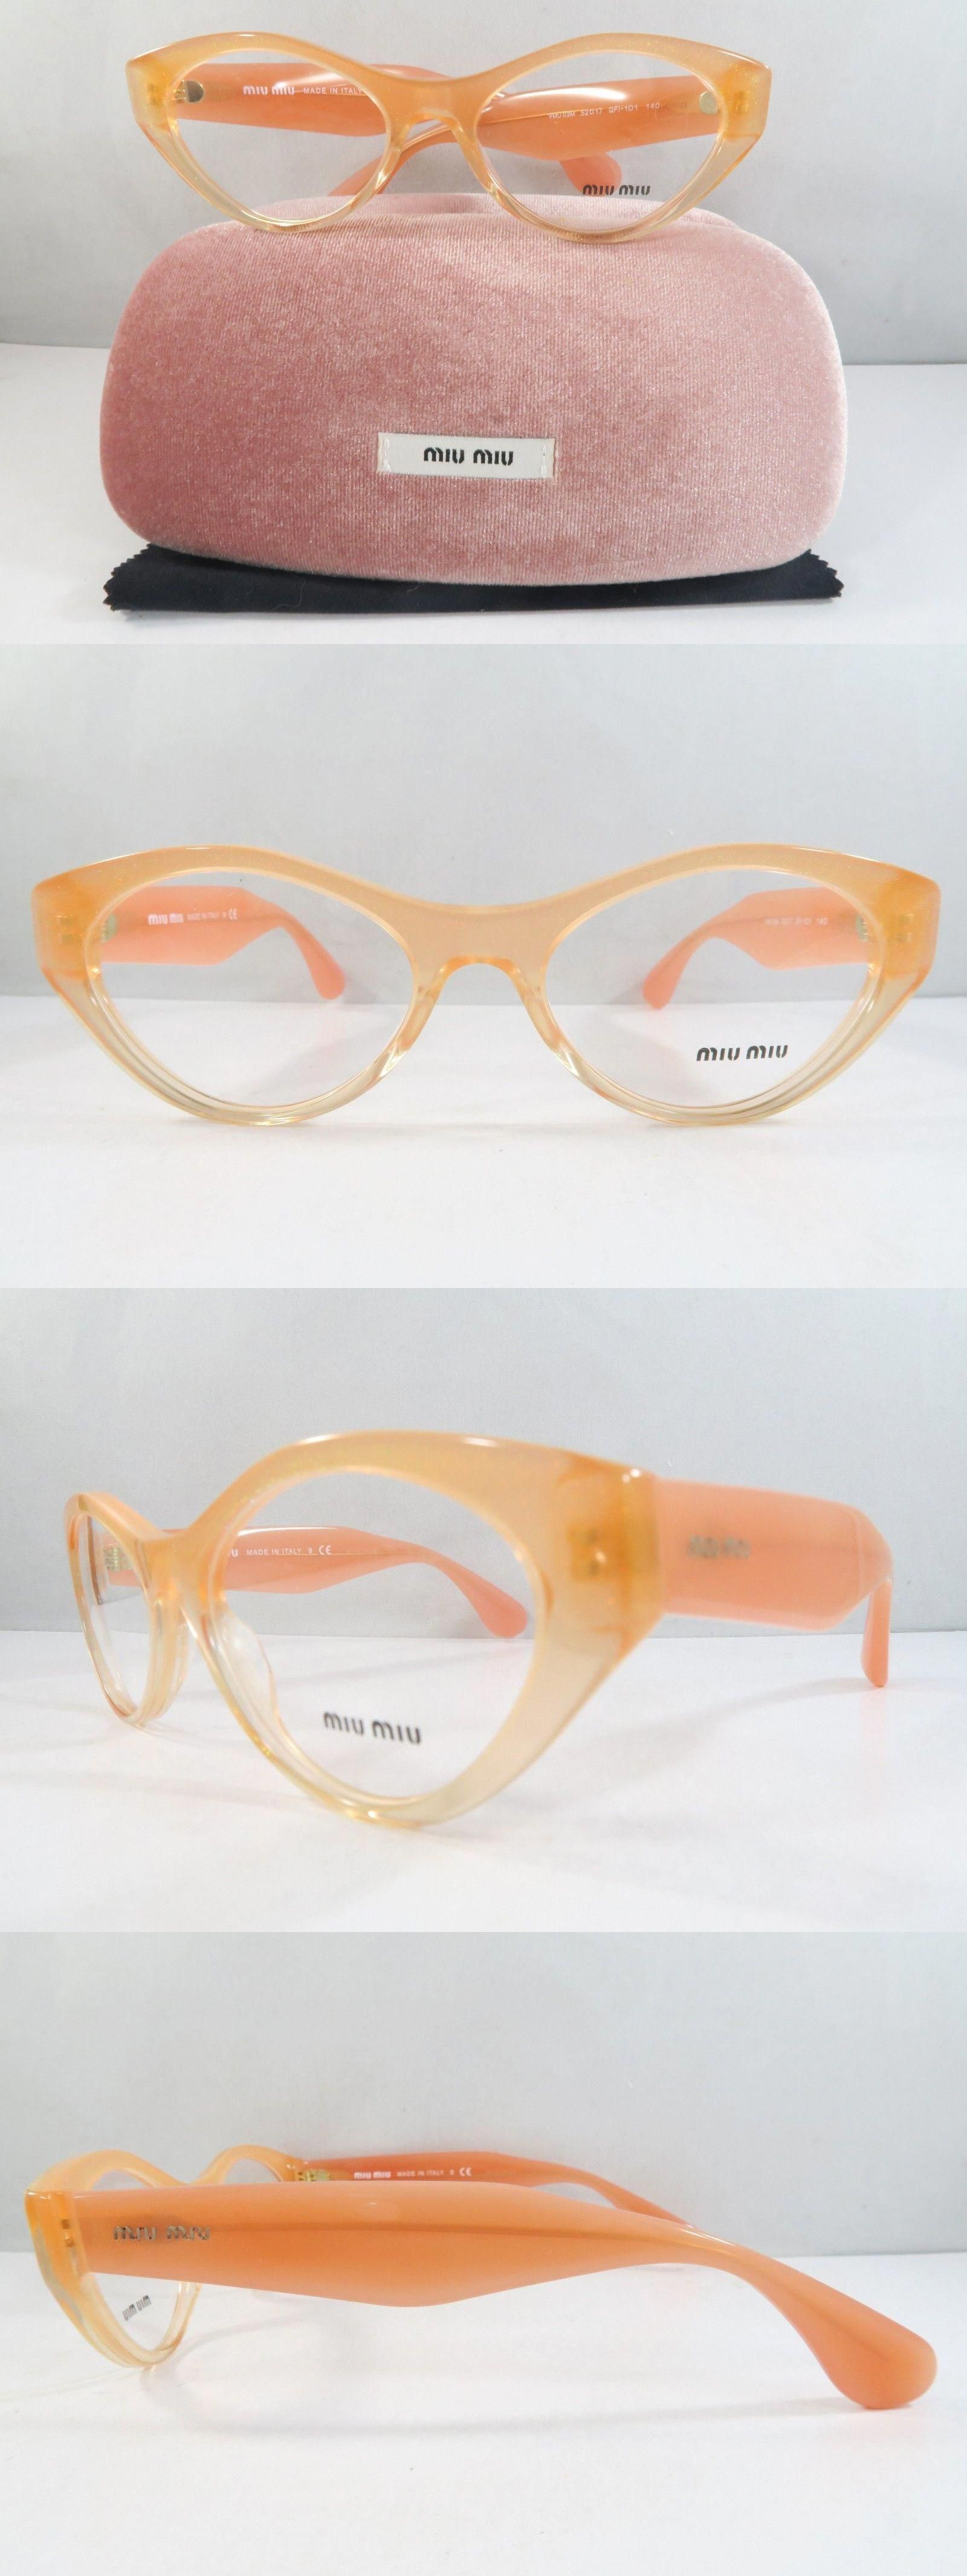 af0b13f99c7f Eyeglass Frames 180957  Miu Miu Vmu 03M Qfi-1O1 Peach Gradient New  Authentic Eyeglasses 52Mm With Case -  BUY IT NOW ONLY   85 on eBay!  MiuMiu